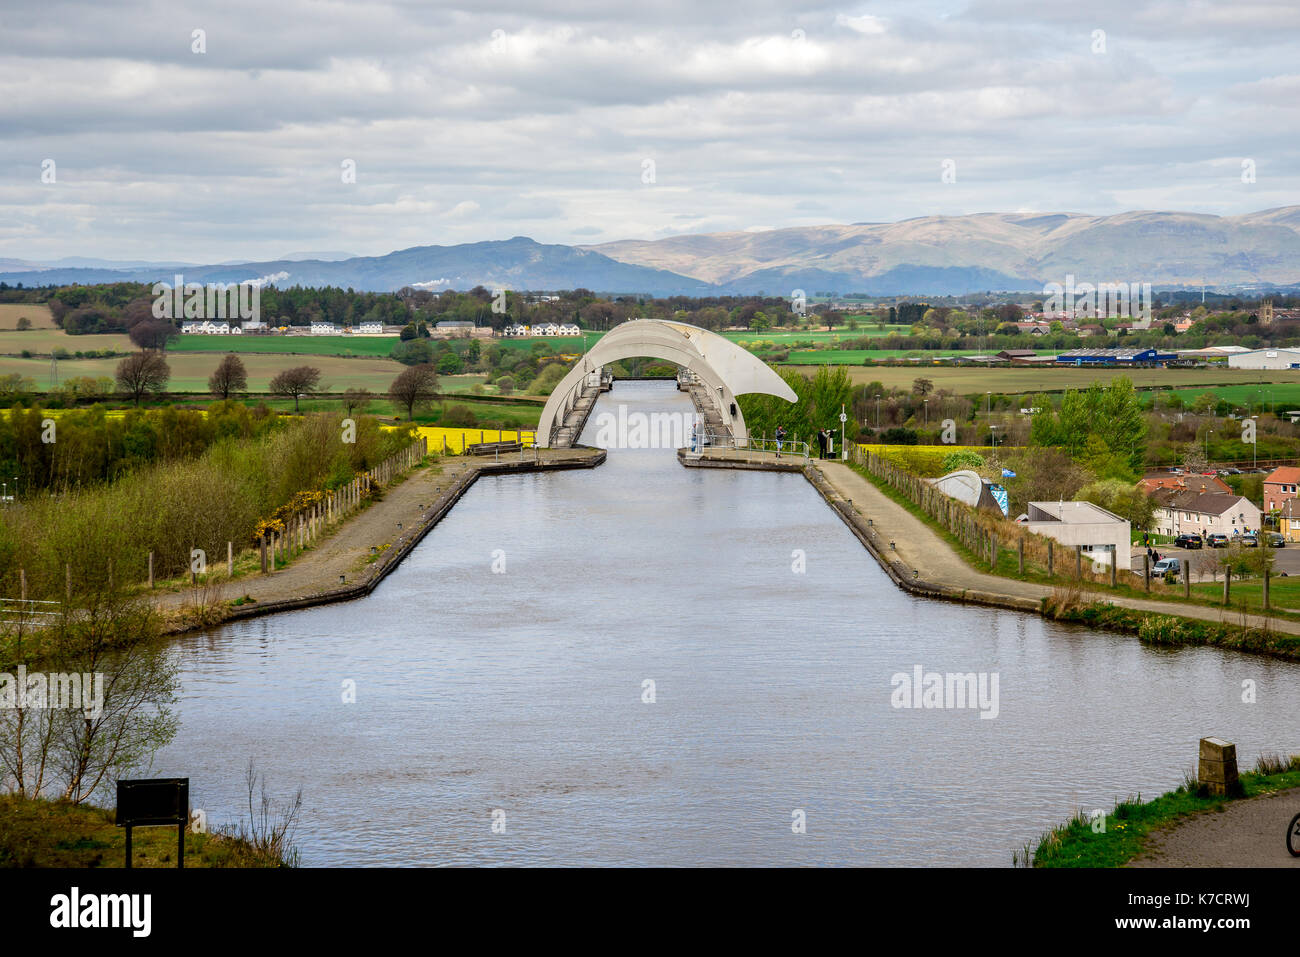 A view of Falkirk Wheel aqueduct and background hills, Scotland - Stock Image